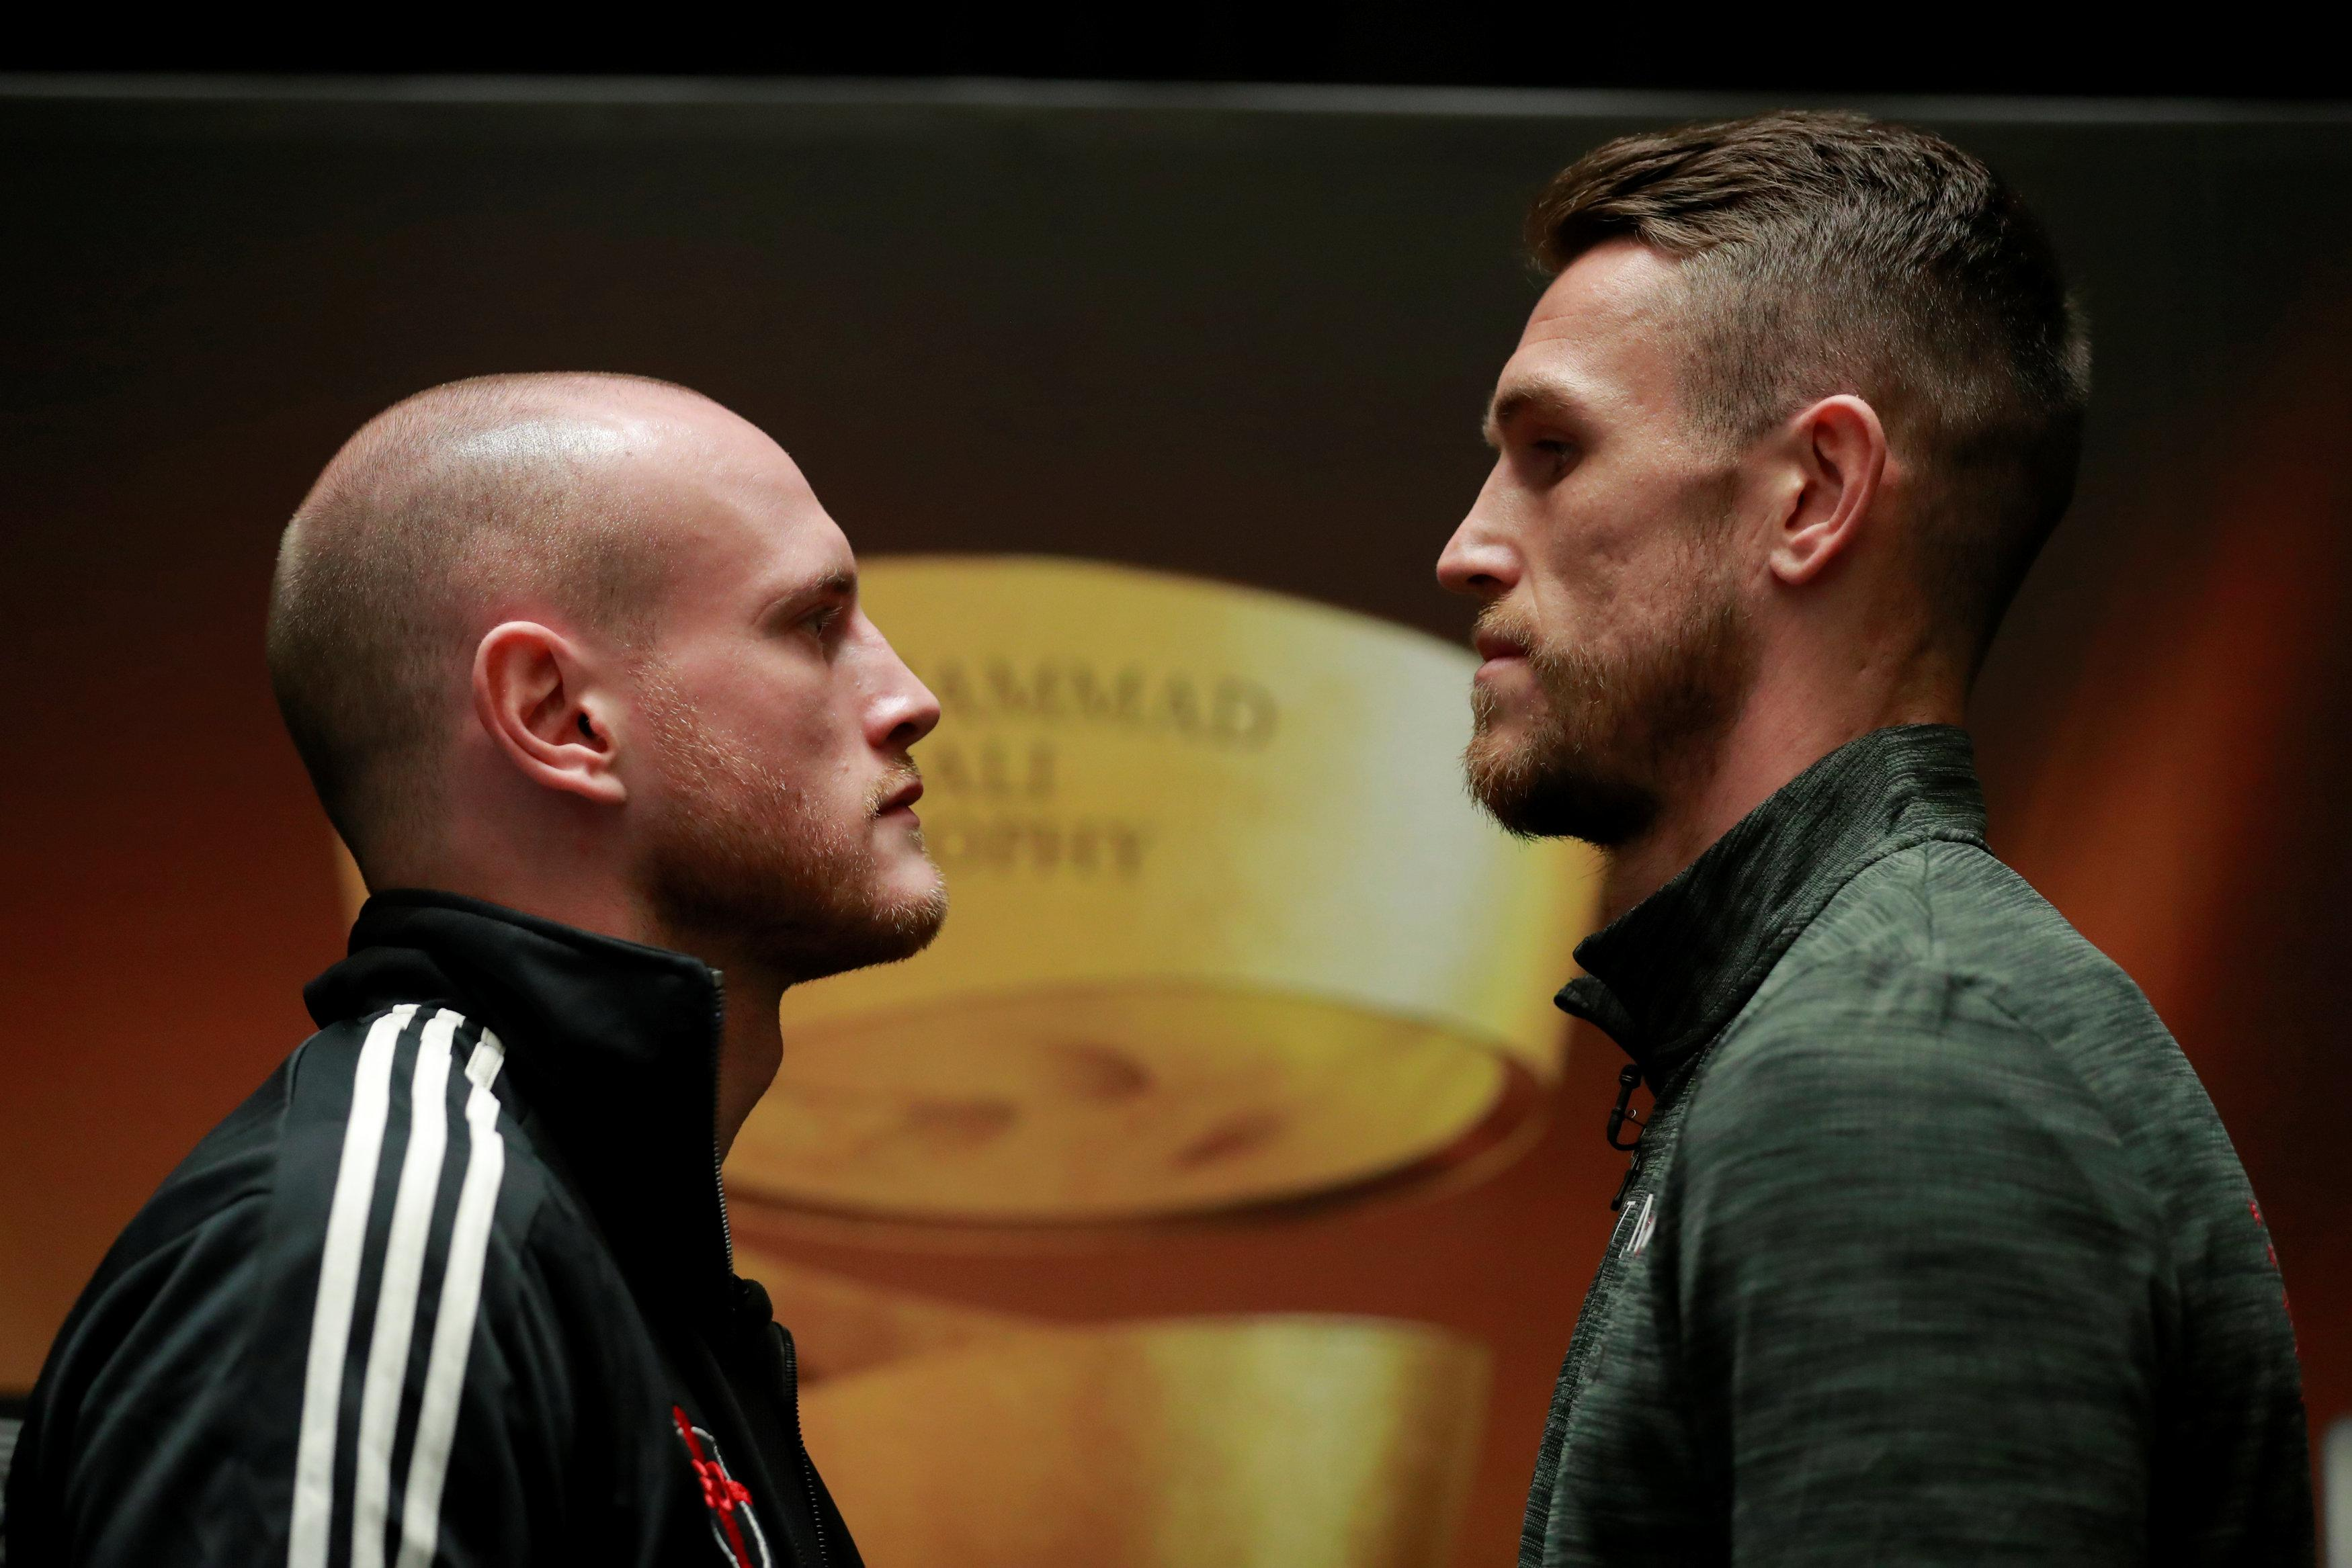 Groves is looking to inflict a first professional defeat on Liverpudlian Smith